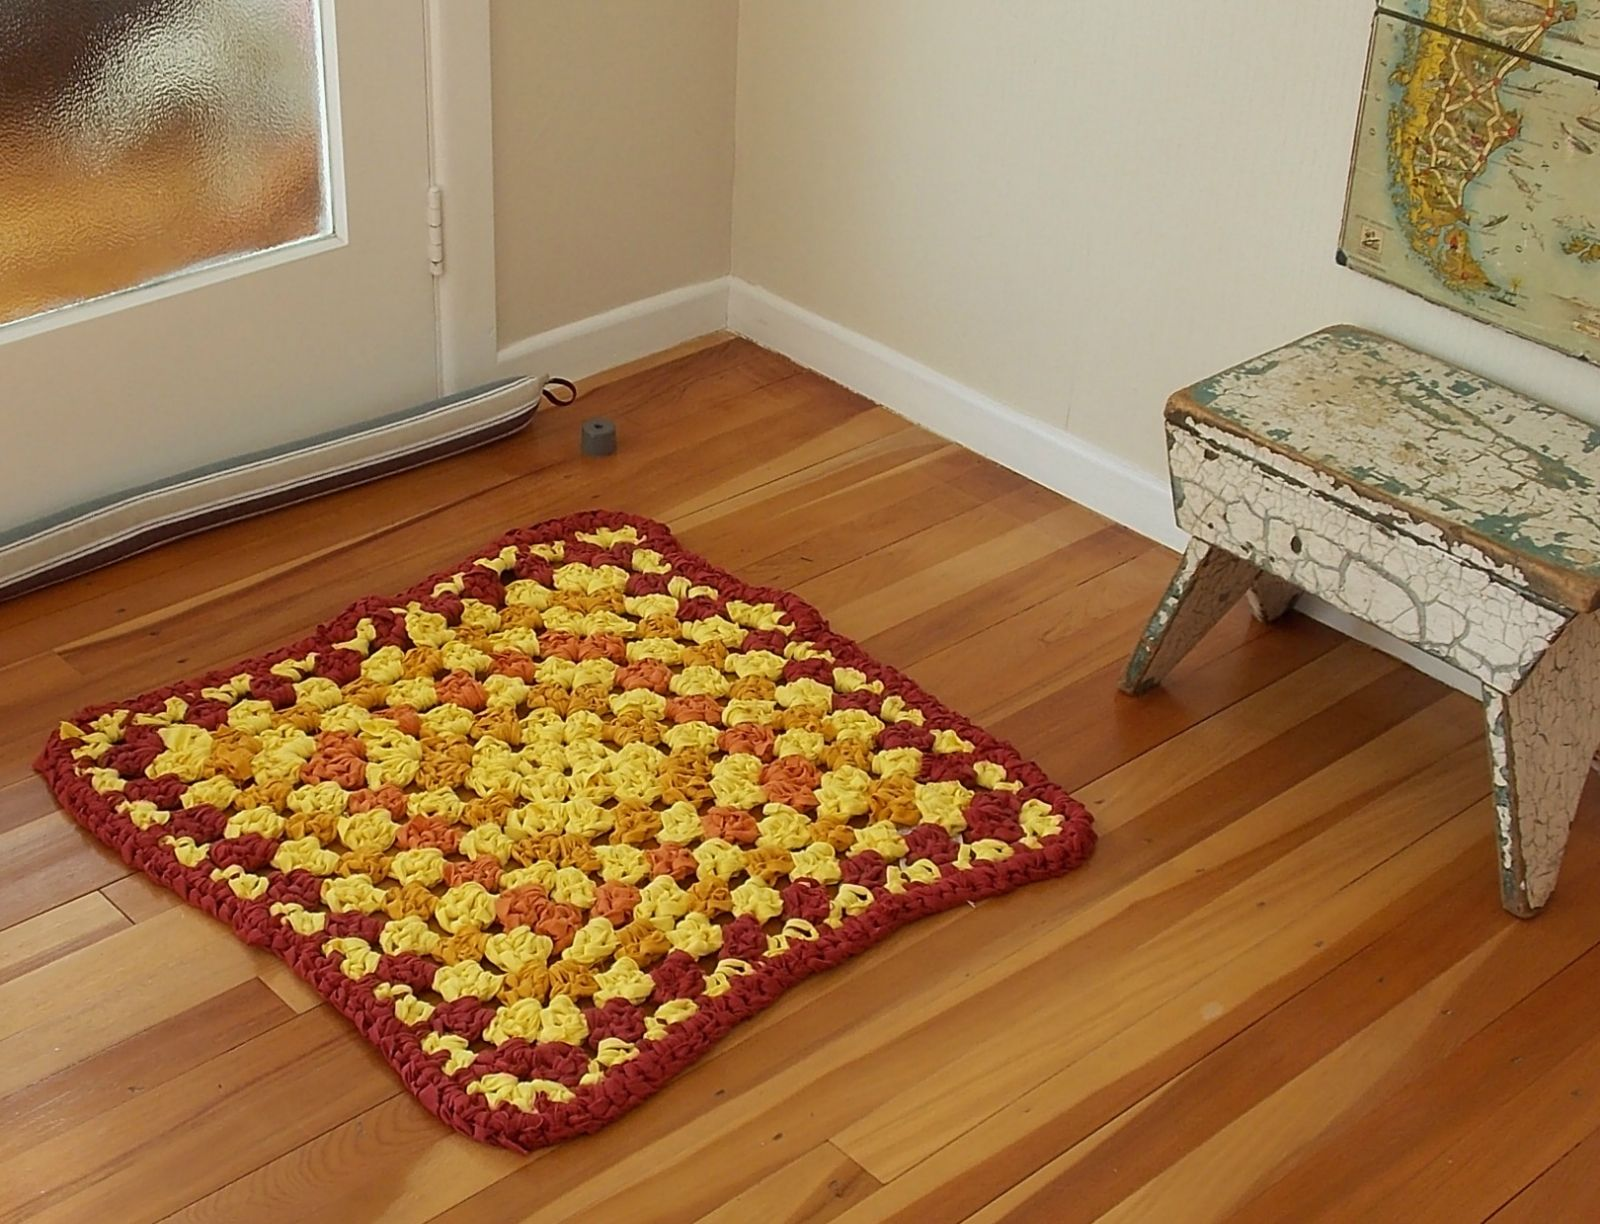 Rug - large granny square shape - crochet in yellow, mustard and maroon